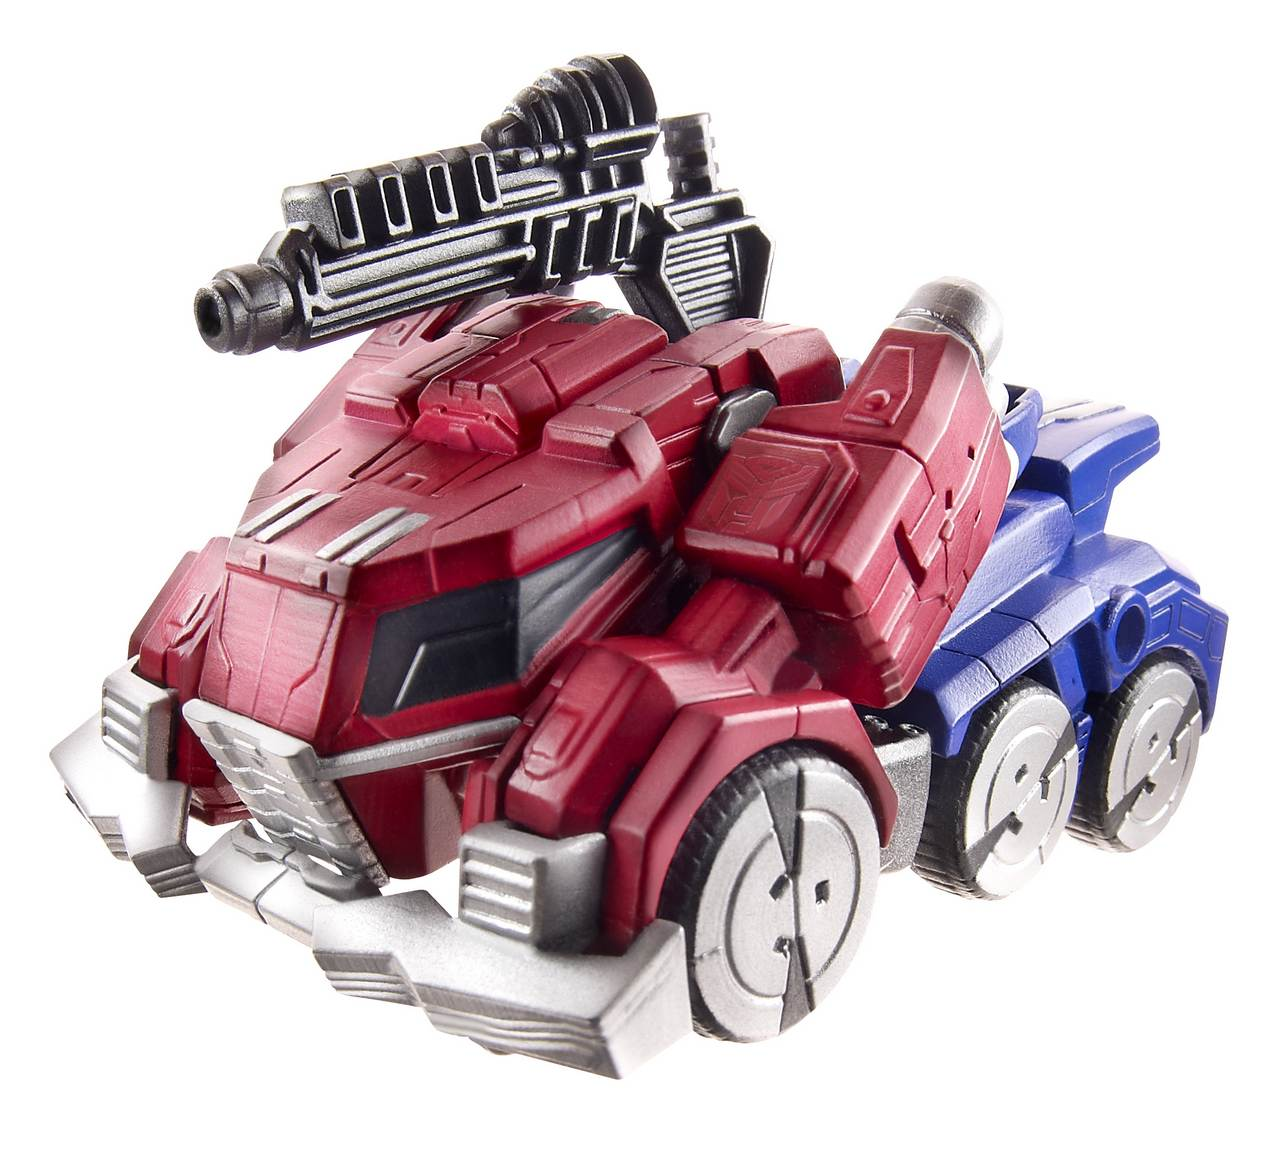 TF-Generations-Deluxe-Optimus-vehicle-A0169